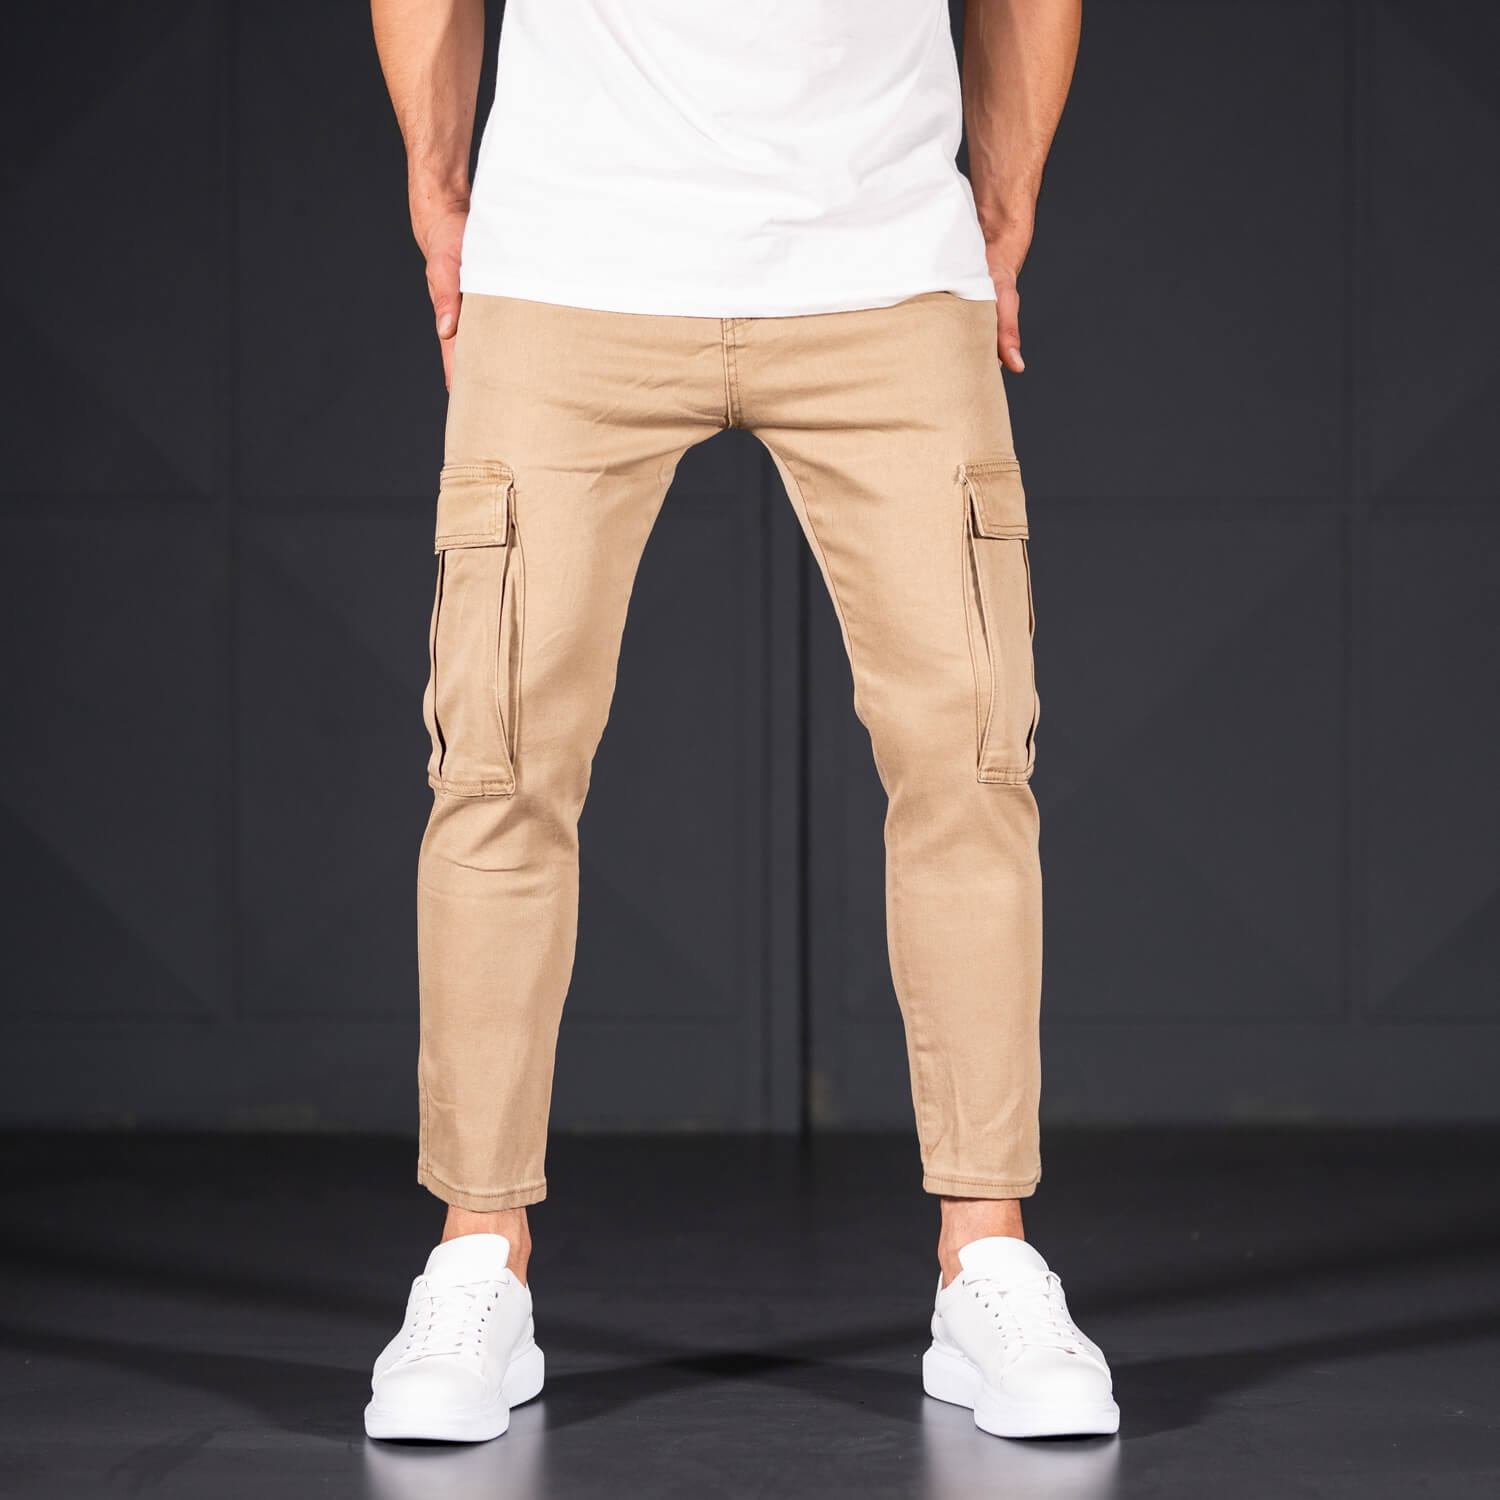 Men S Jeans With Pockets Style In Camel